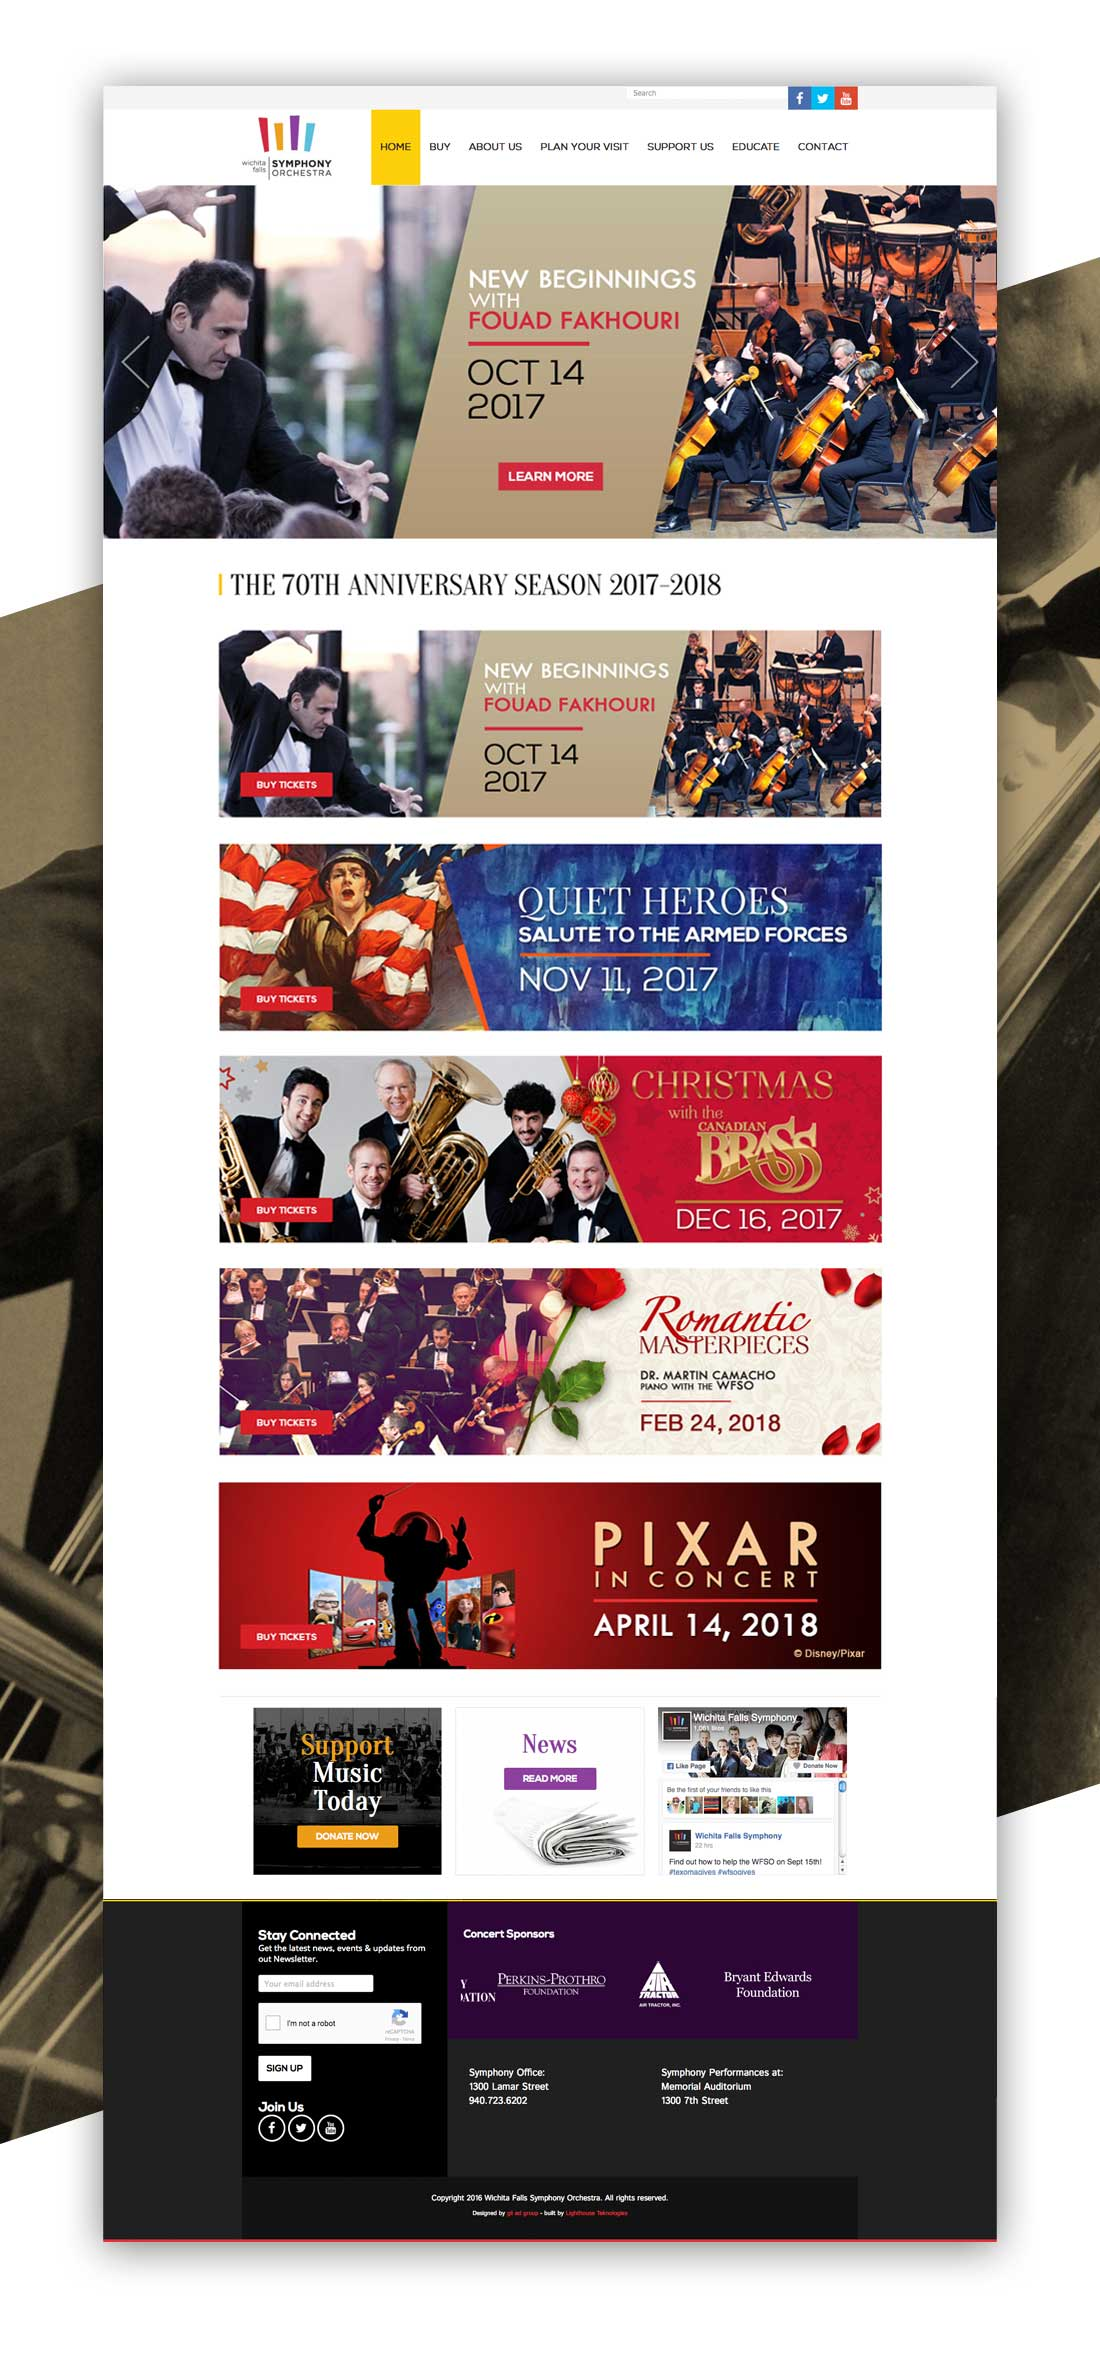 Wichita Falls Symphony Orchestra Website Design